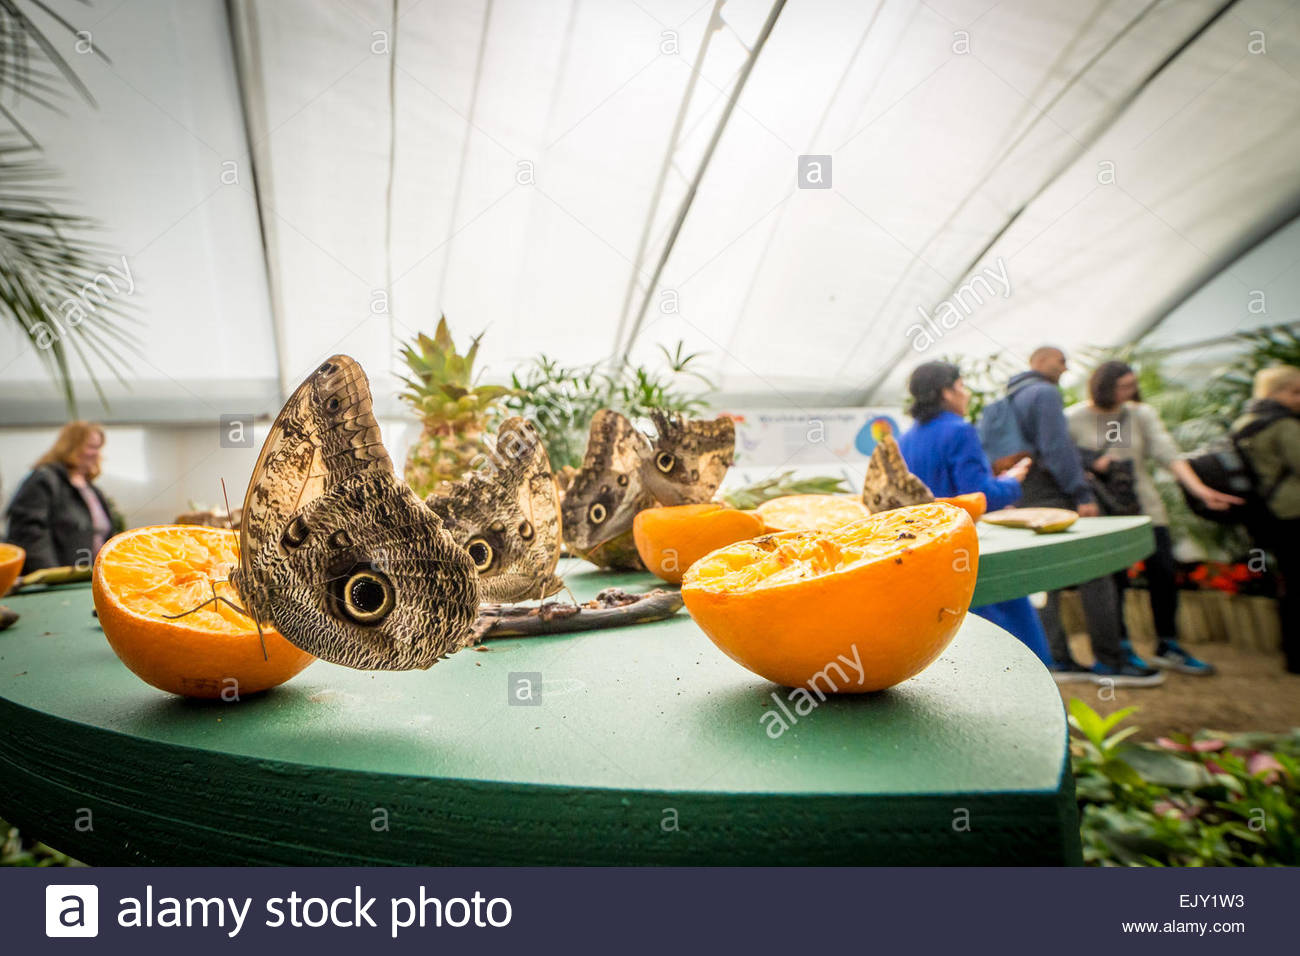 London, UK. 2nd April, 2015. Sensational Butterflies at the Natural History Museum Credit:  Guy Corbishley/Alamy - Stock Image